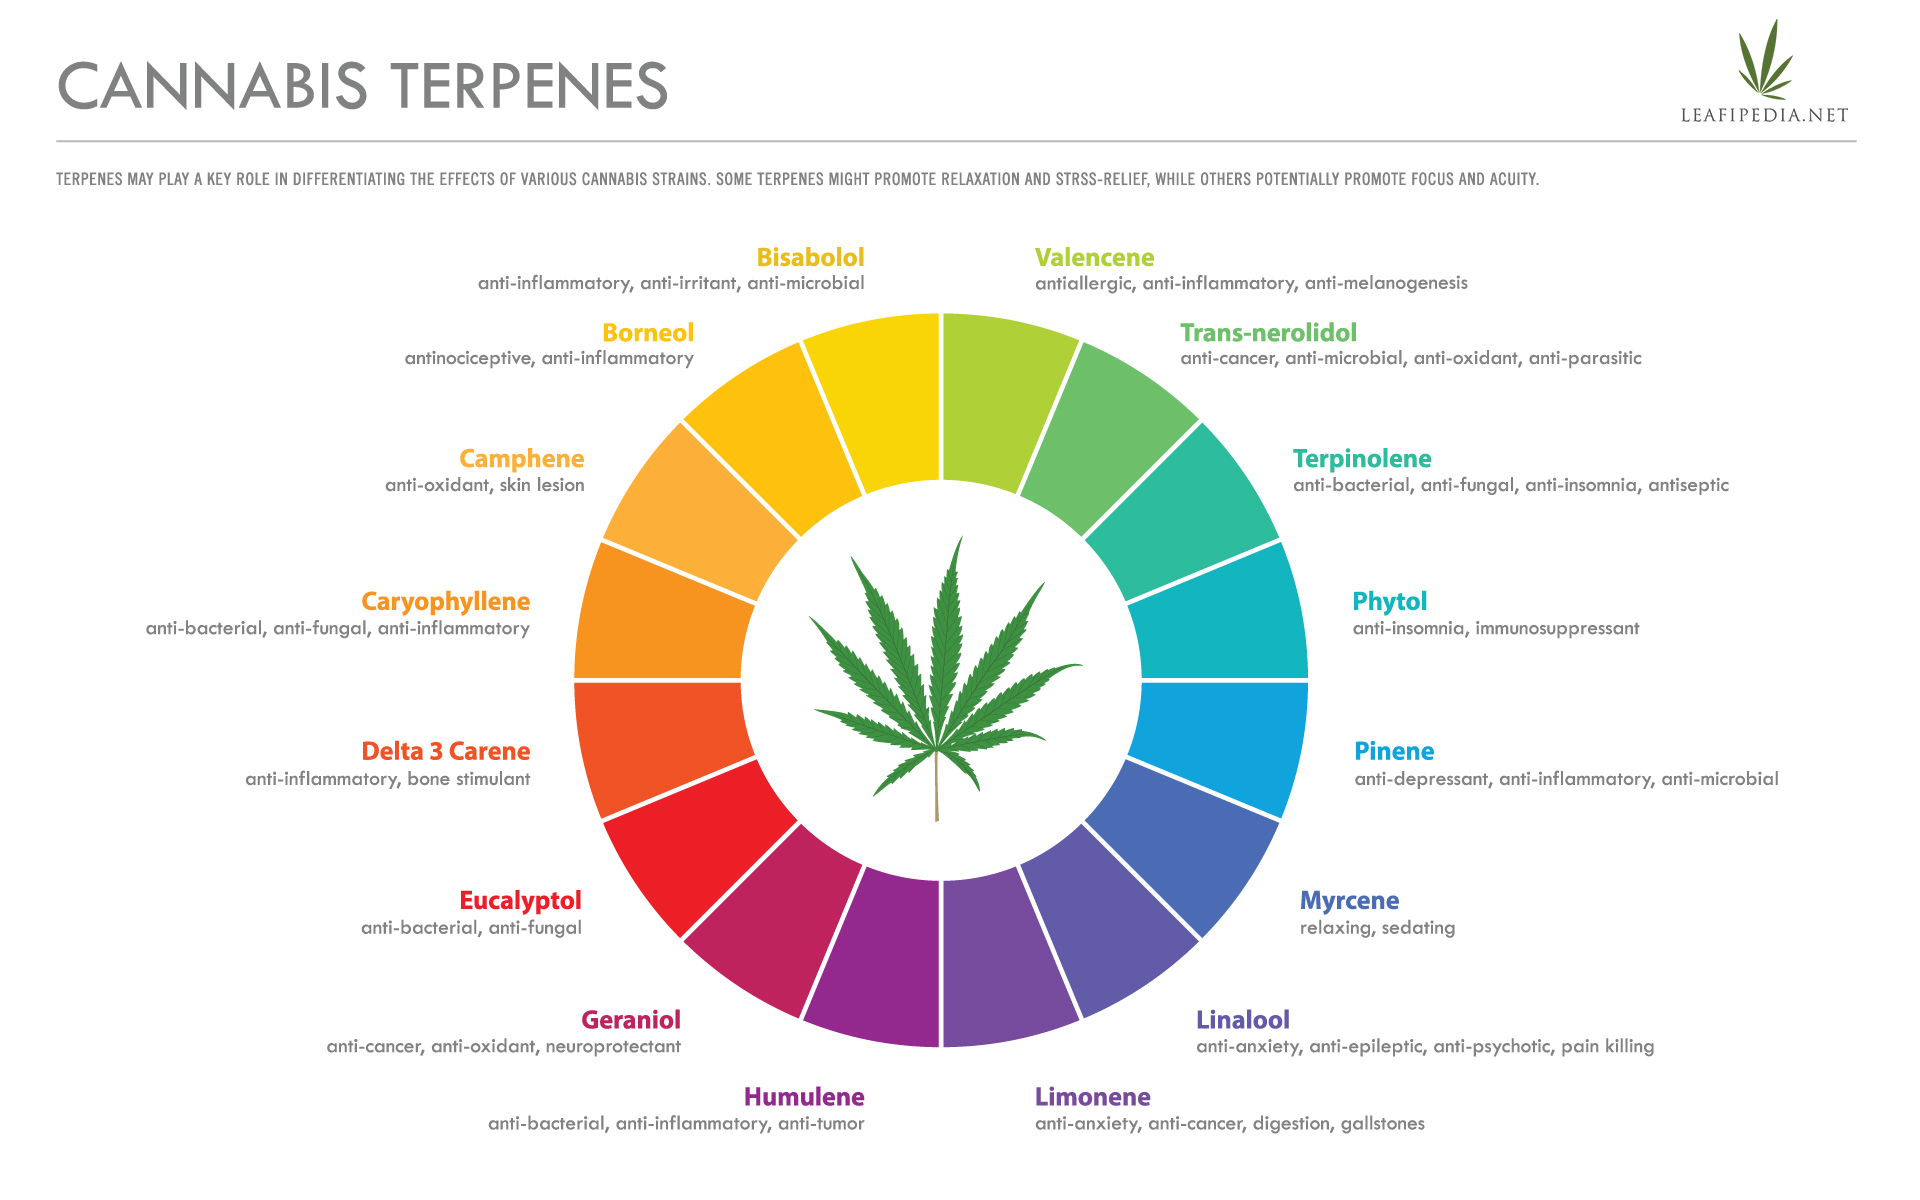 cannabis terpenes effects infographic